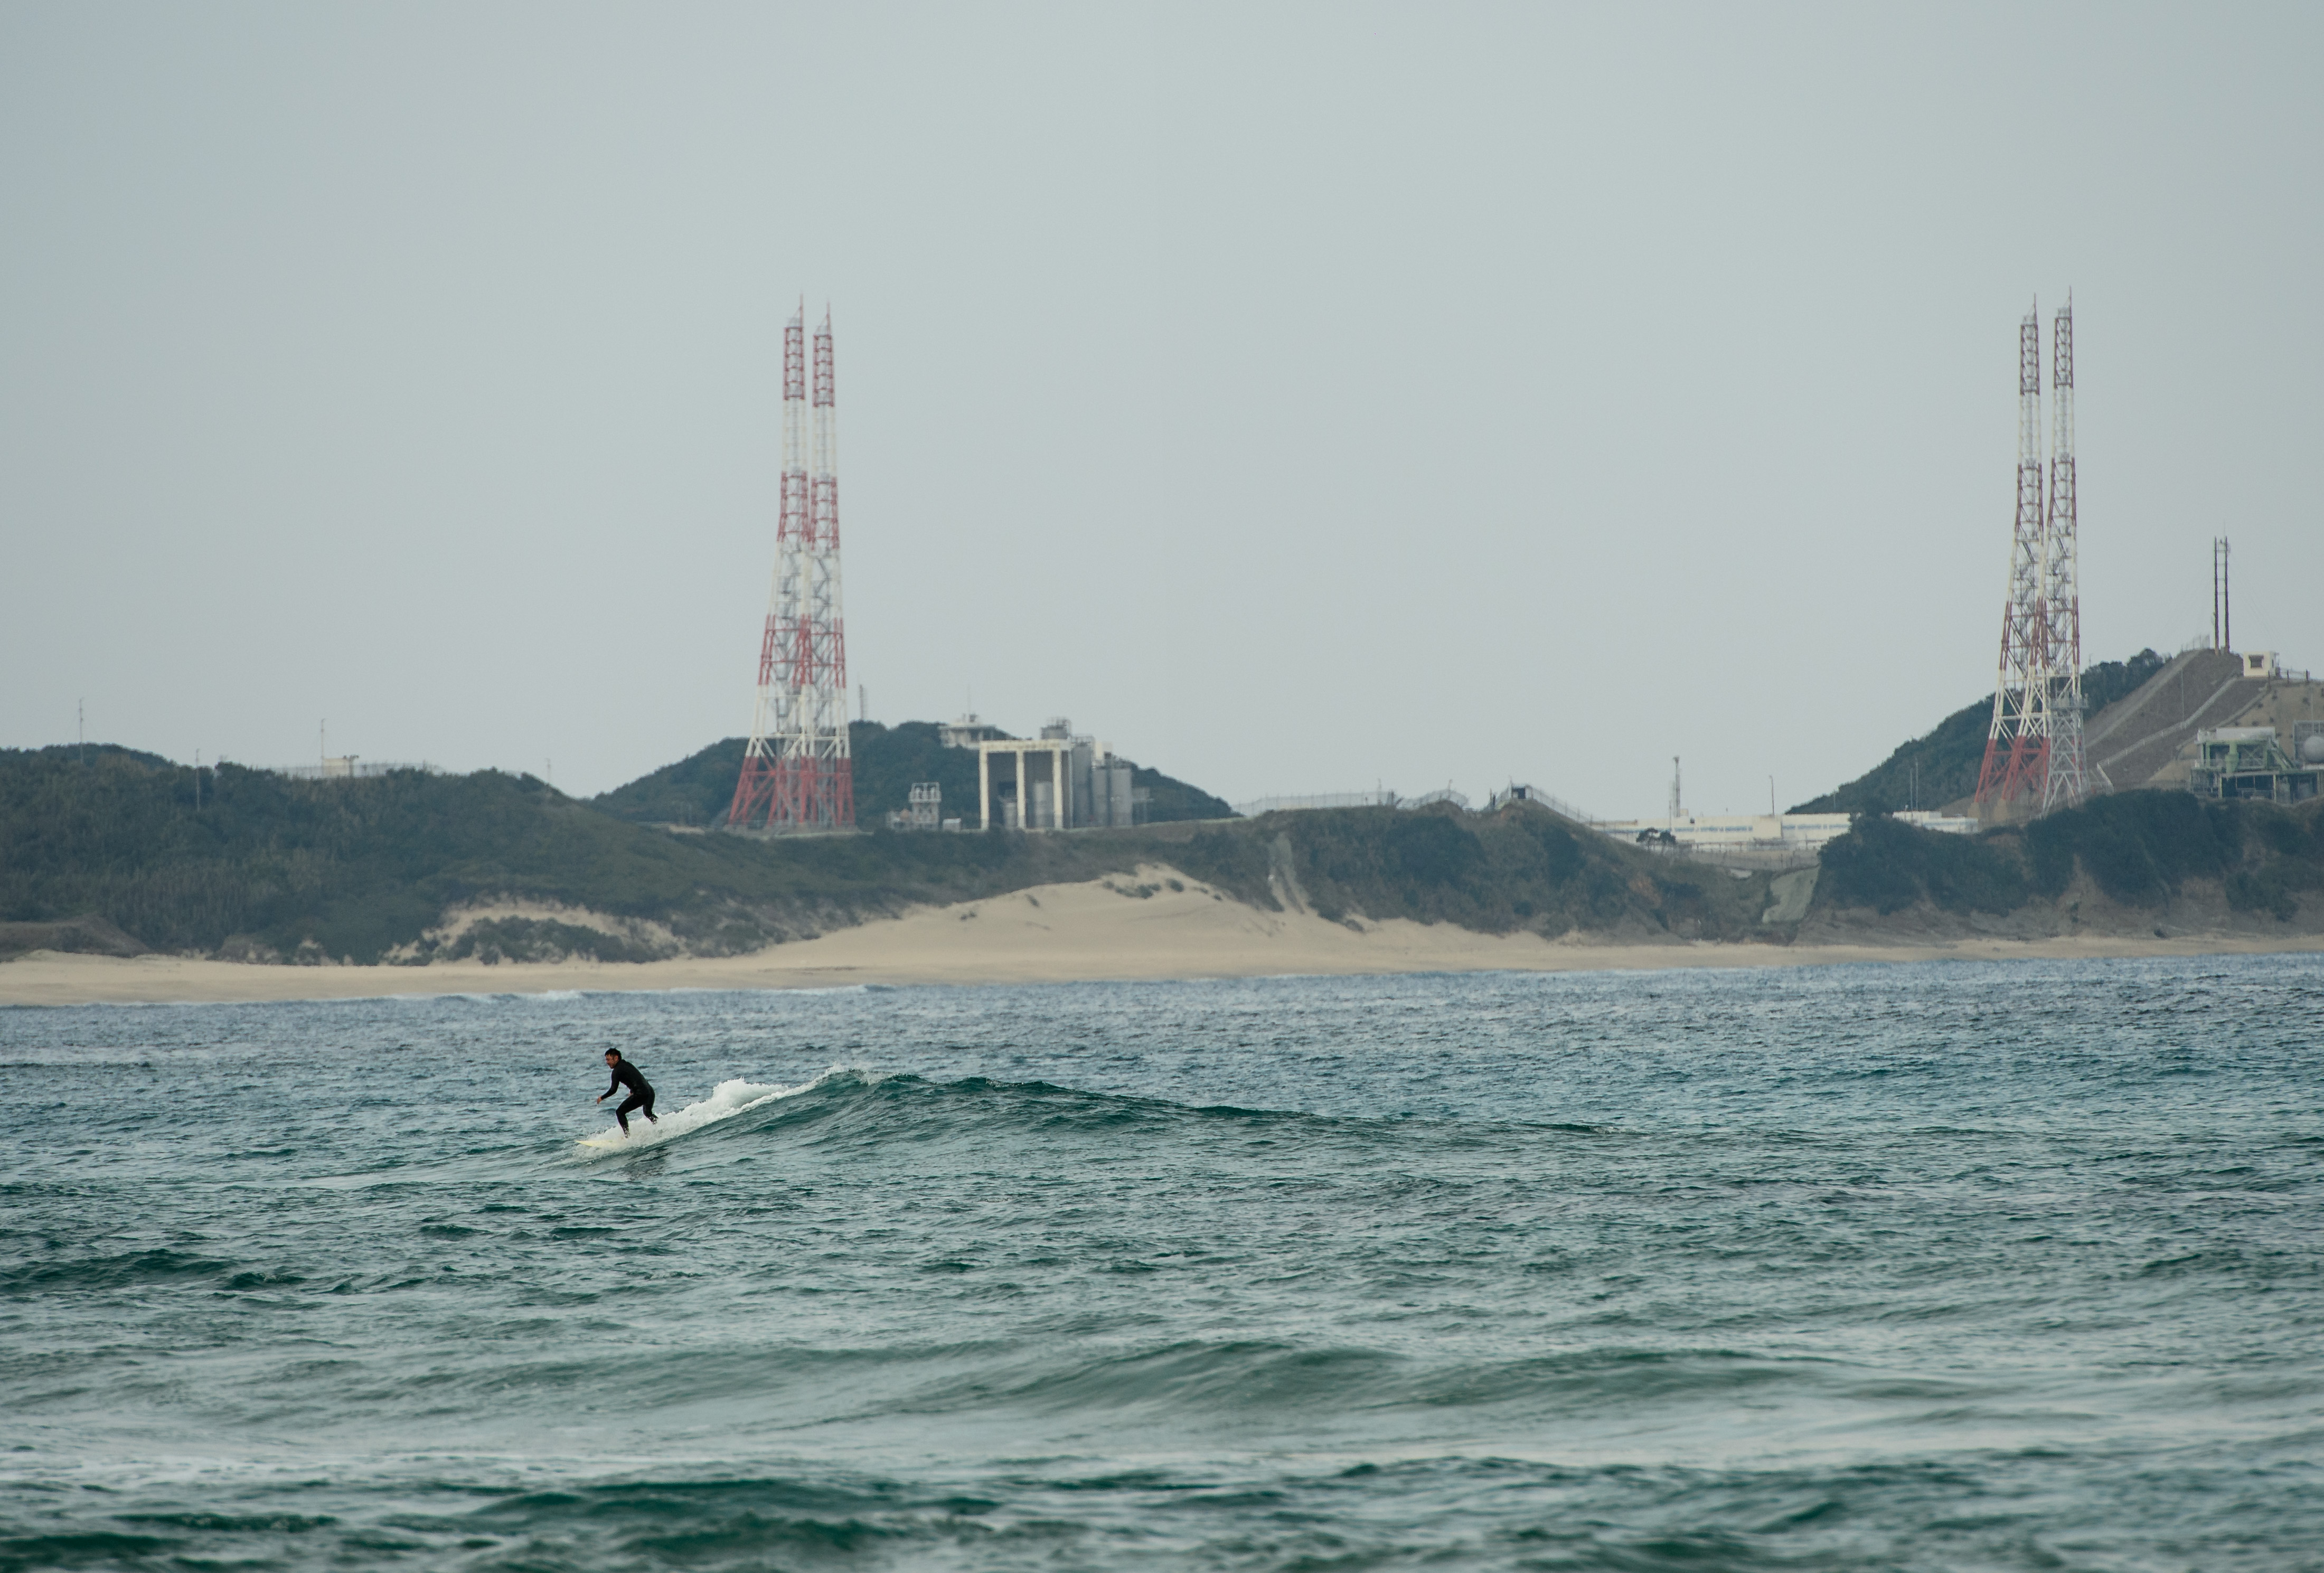 Surfer Catches Wave Near Tanegashima Space Center